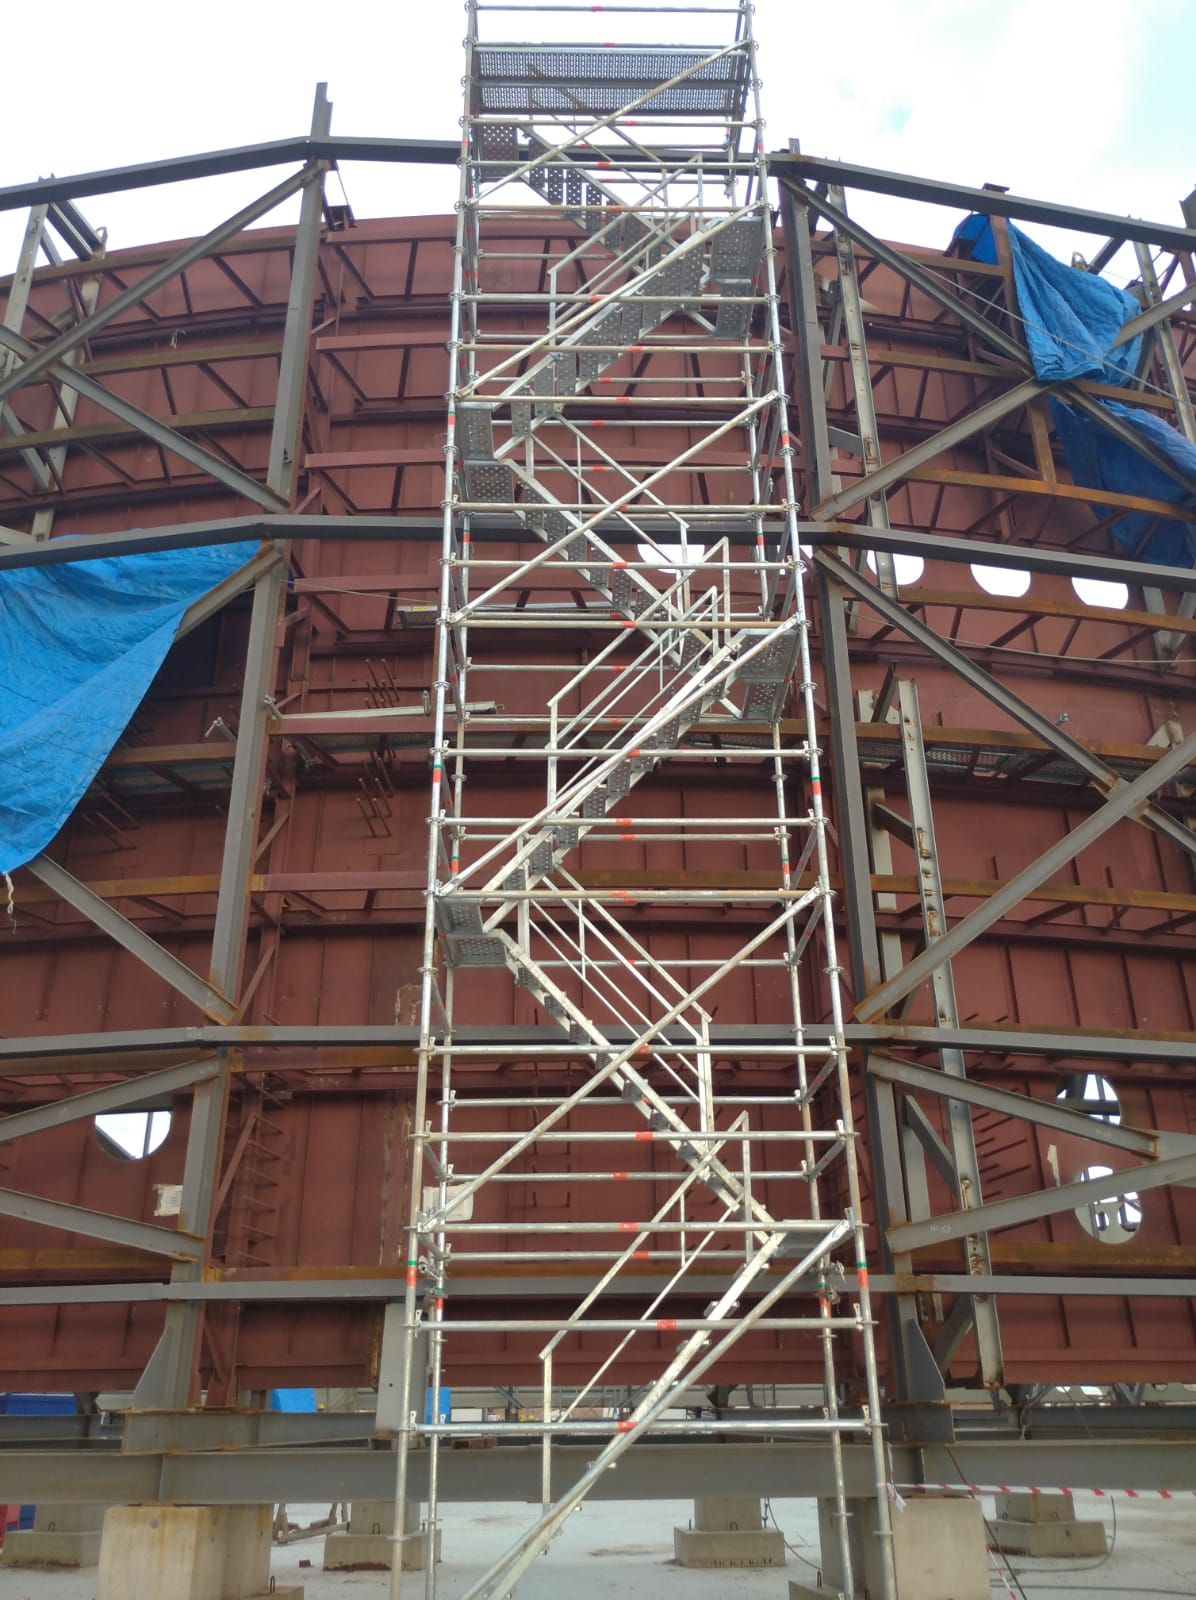 yagmur scaffolding stair tower 03 - Multidirectional Scaffolding System